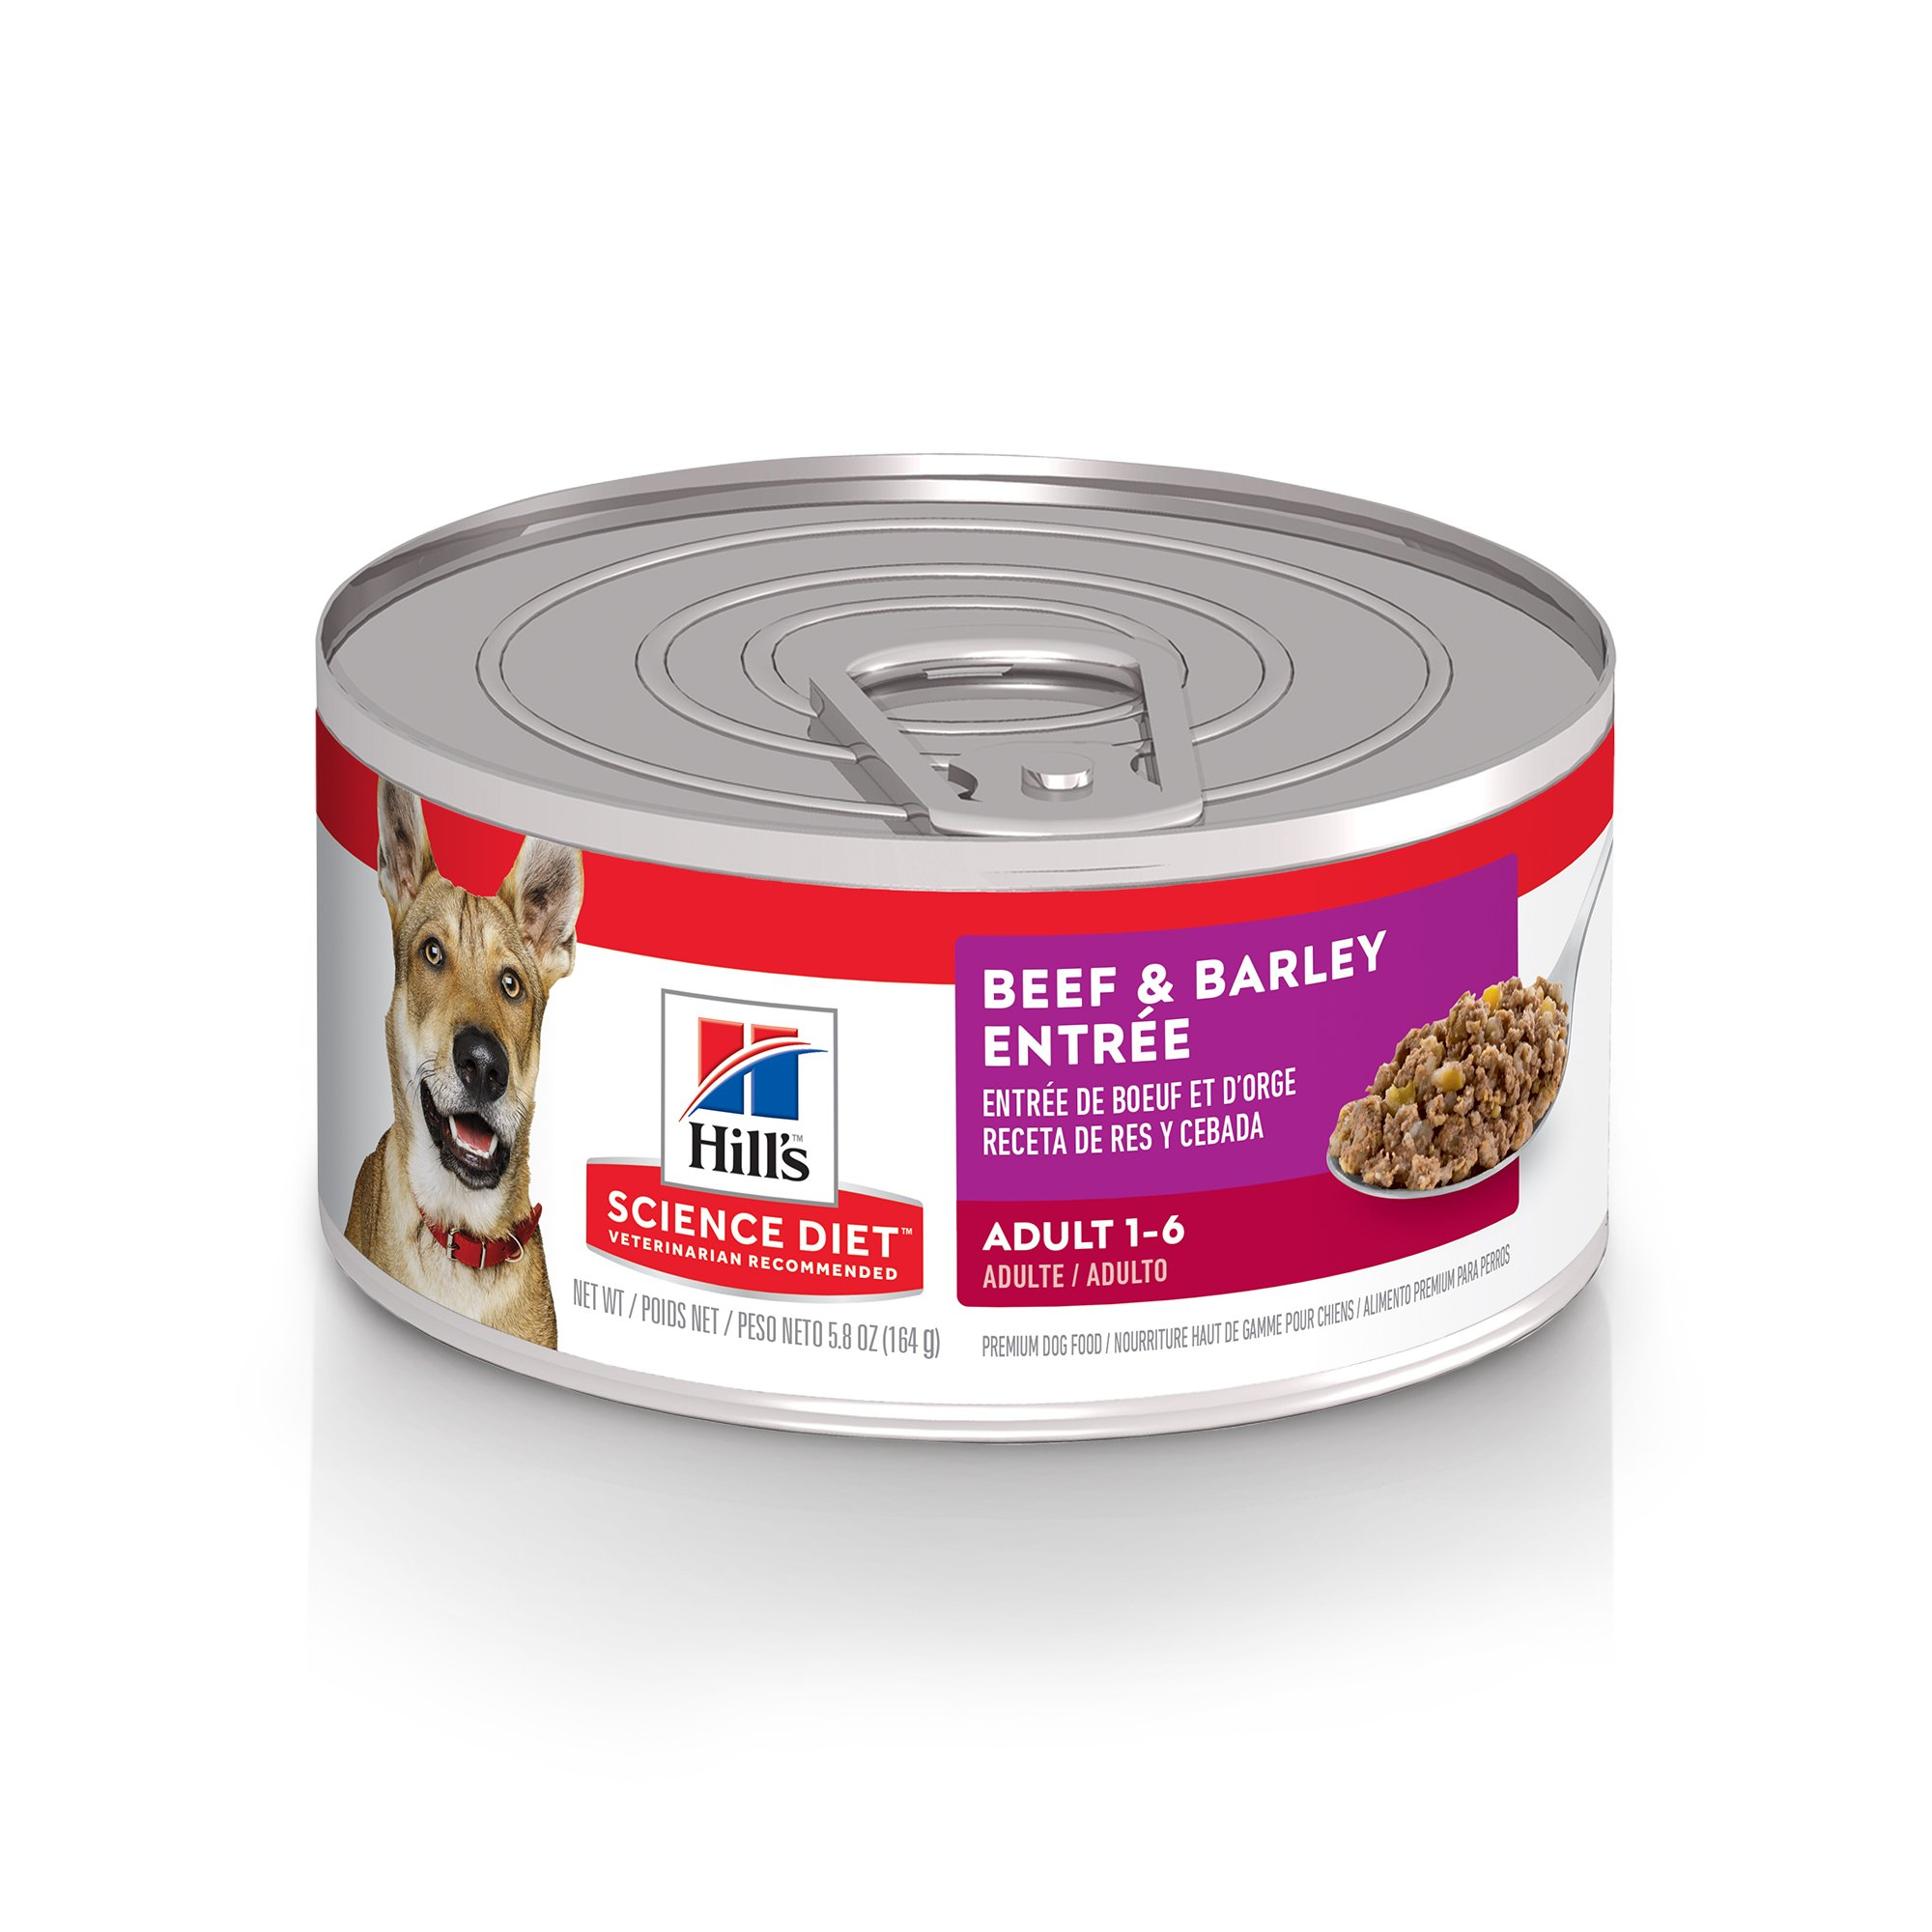 Hill's Science Diet Adult Beef & Barley Entree Canned Dog Food, 5.8 oz., Case of 24, 24 X 5.8 OZ